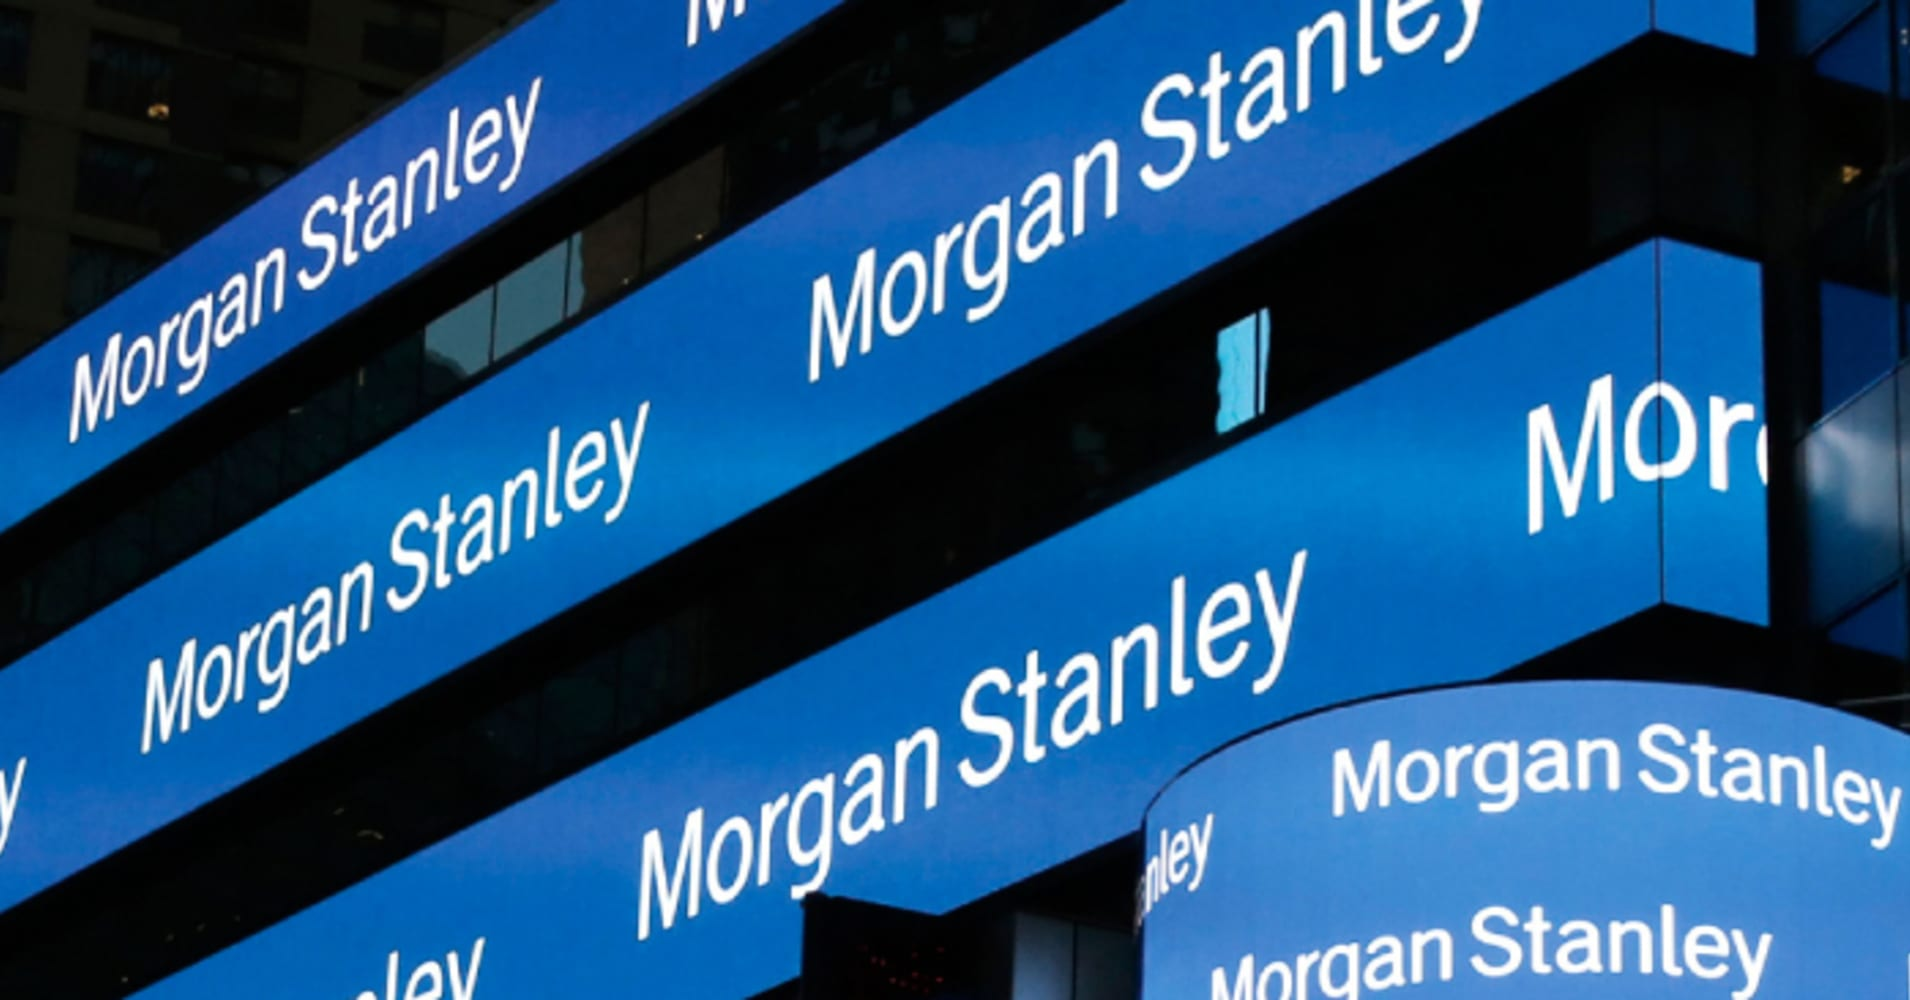 Morgan Stanley Accused In Lawsuit Of Mismanaging Its 401 K